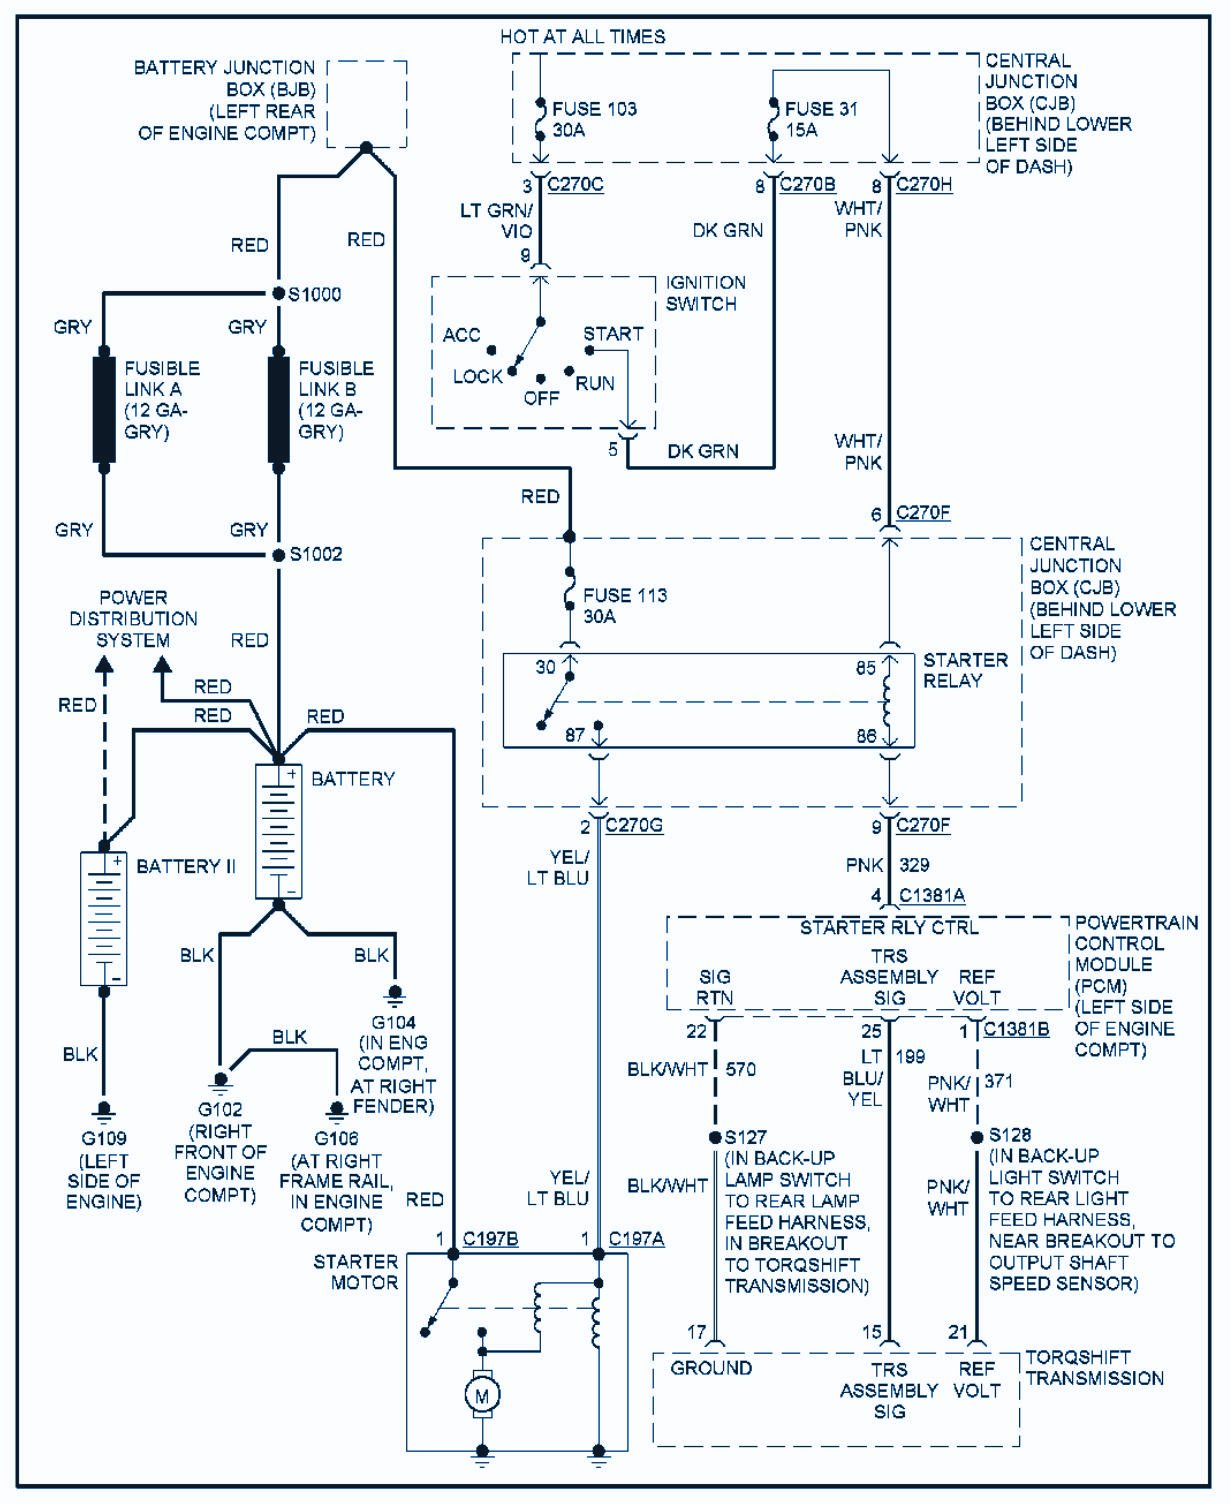 2008 Ford F350 DIESEL Wiring Diagram | Auto Wiring Diagrams